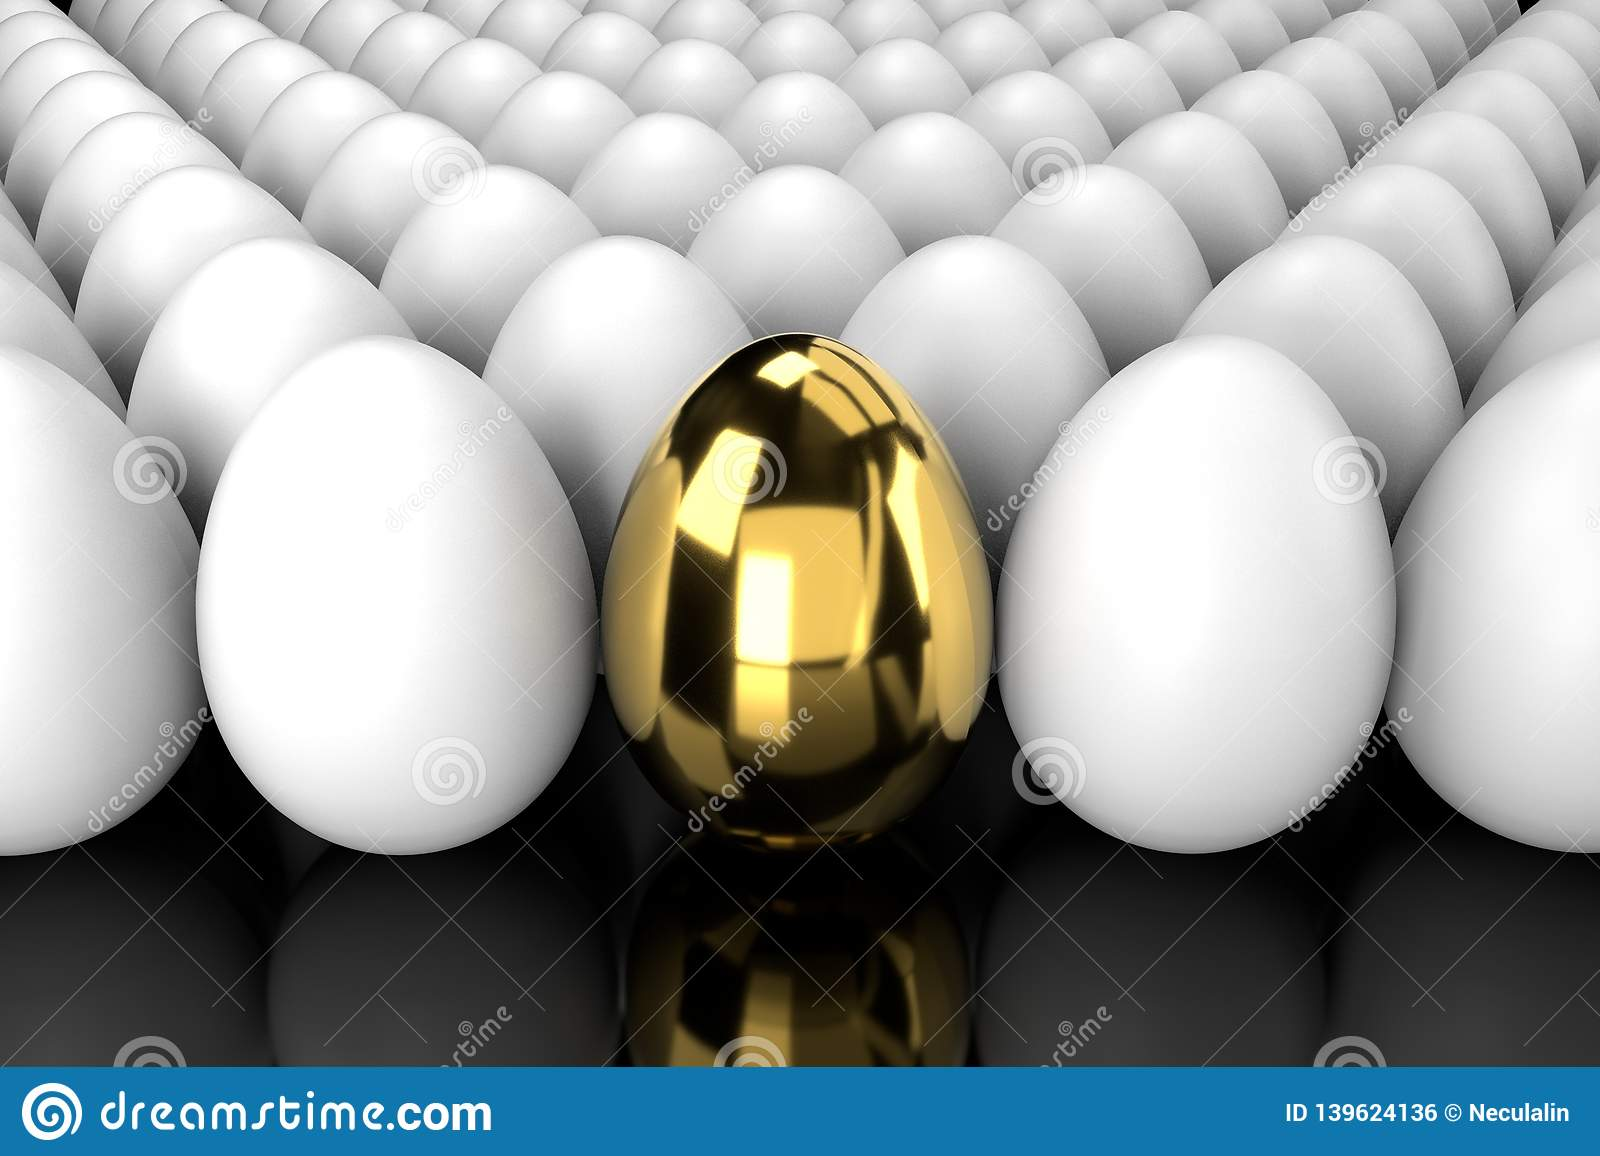 Golden Egg Standing Out From The Crowd with reflection